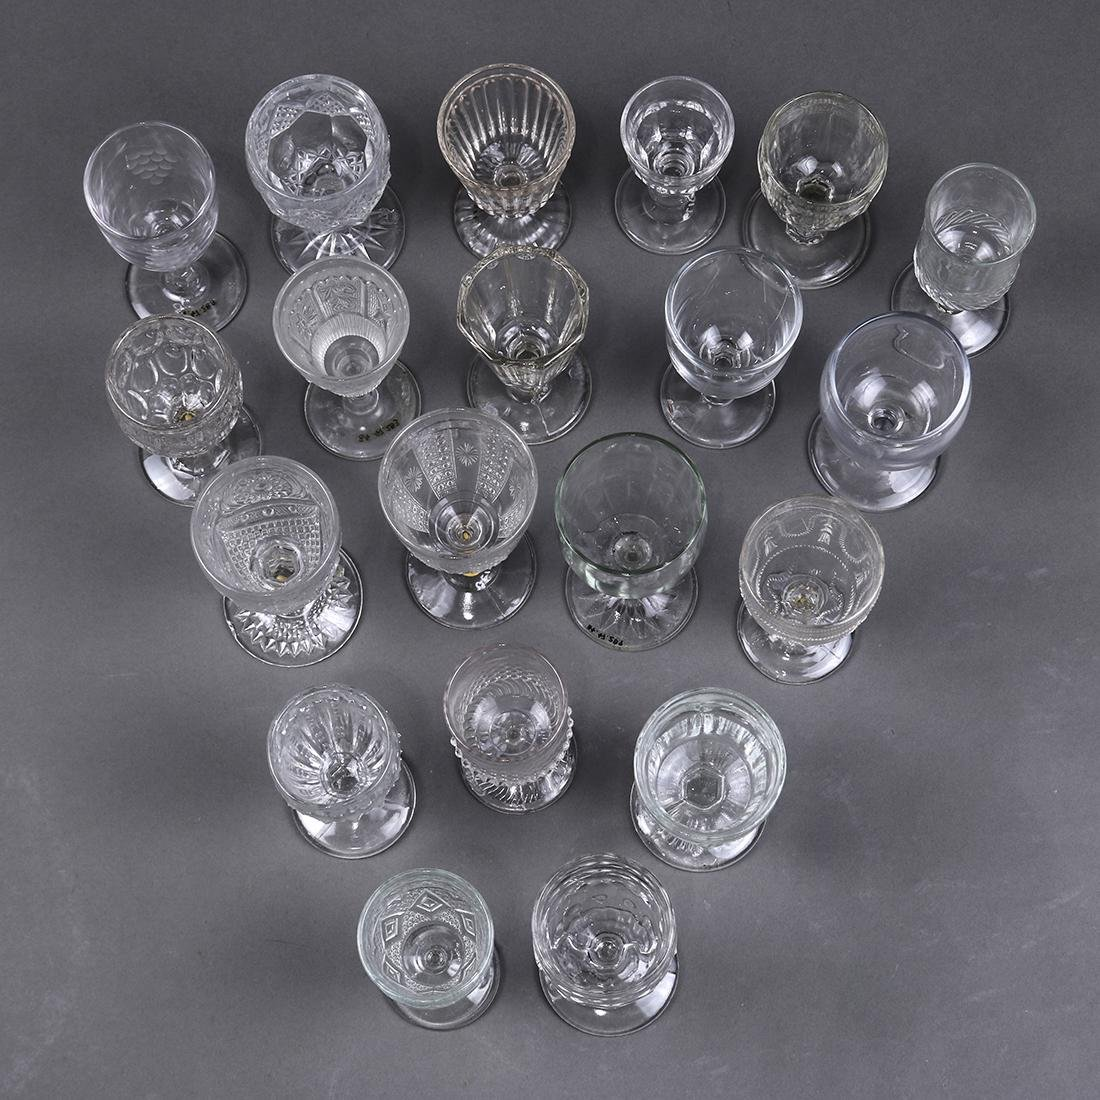 (lot of 20) Early Continental stemware group, late